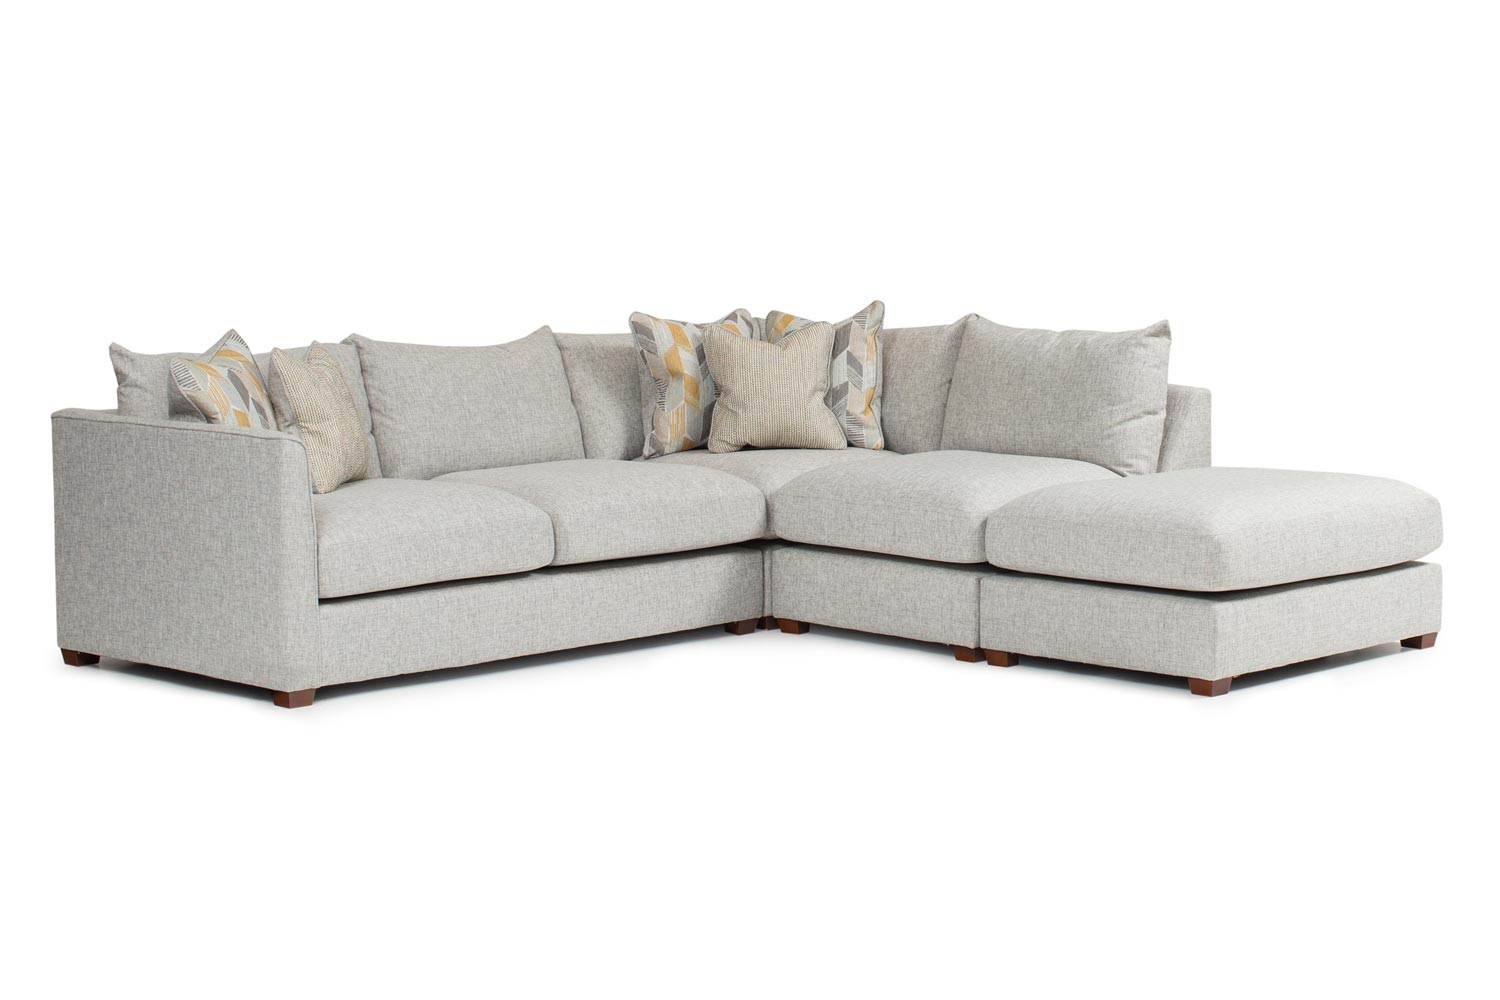 Corner Couch Faye Corner Sofa With Chaise Harvey Norman Ireland